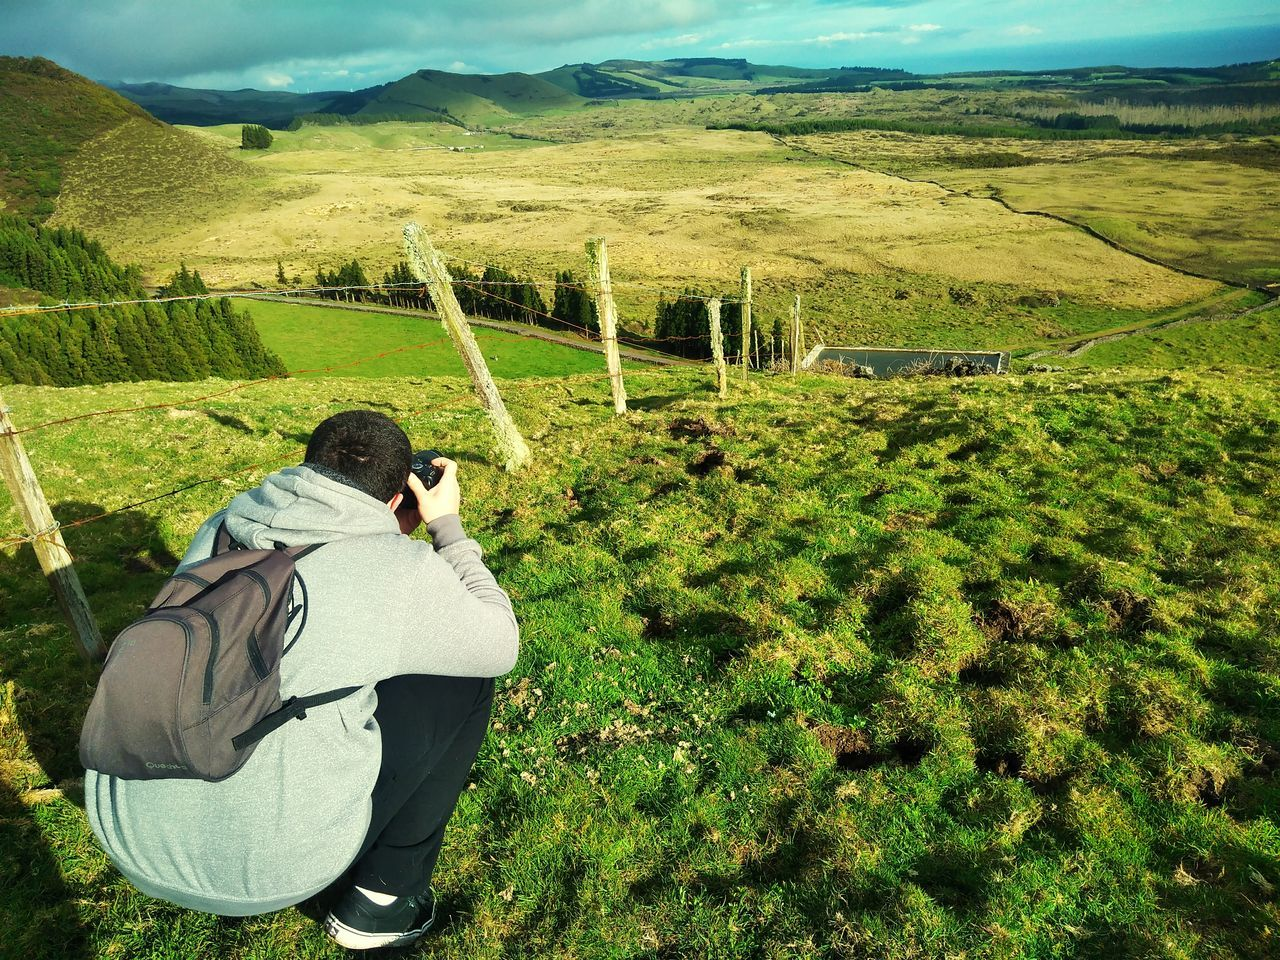 Photographer in action Only Men One Man Only One Person Sunlight Men Rural Scene Leisure Activity Green Color Landscape Day Adults Only Agriculture Outdoors Adult People Nature EyeEm Azores Eyeem Market EyeEmNewHere EyeEm Gallery Grass Beauty In Nature